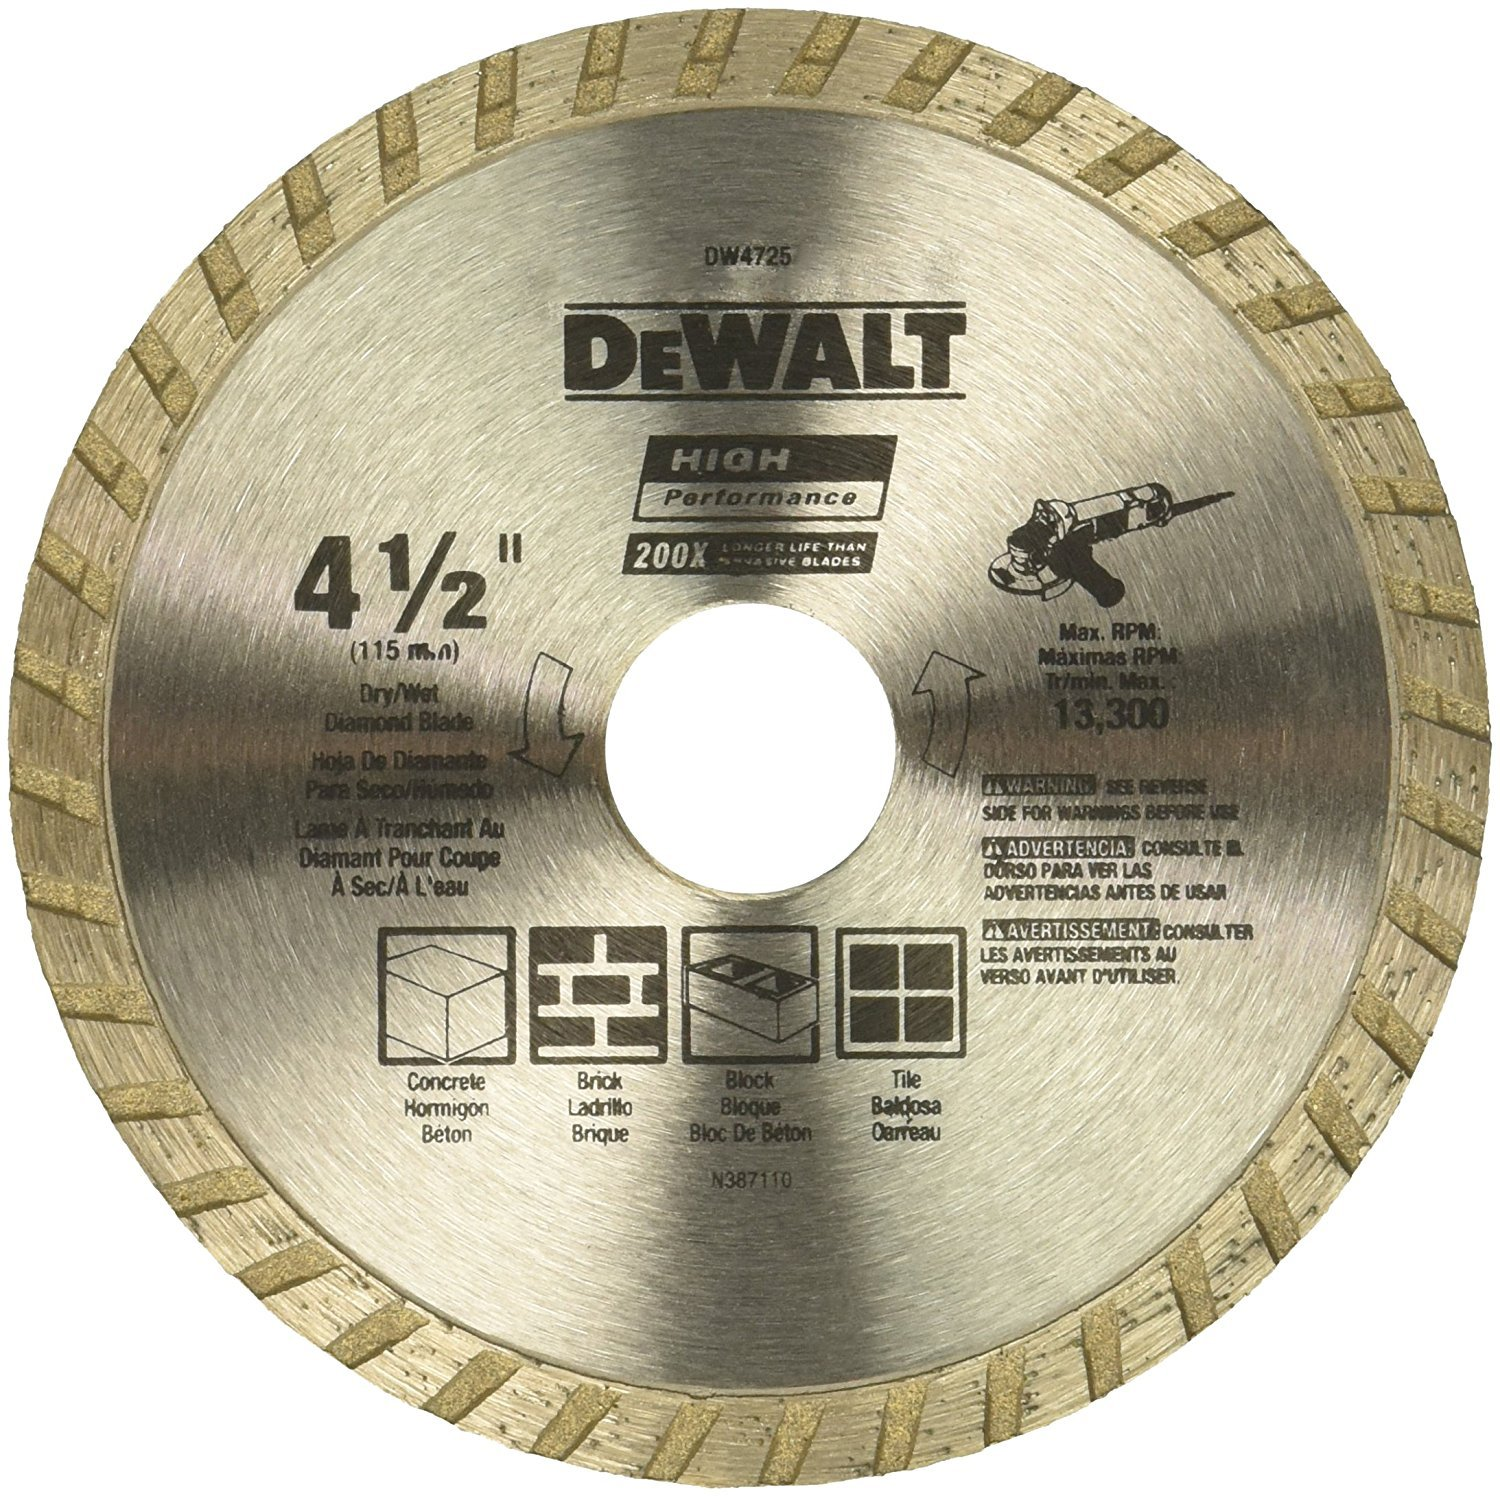 DEWALT DW4725 High Performance 4-1/2-Inch Dry Cutting Continuous Rim Diamond Saw Blade with 7/8-Inch Arbor for Masonry (3-Pack)